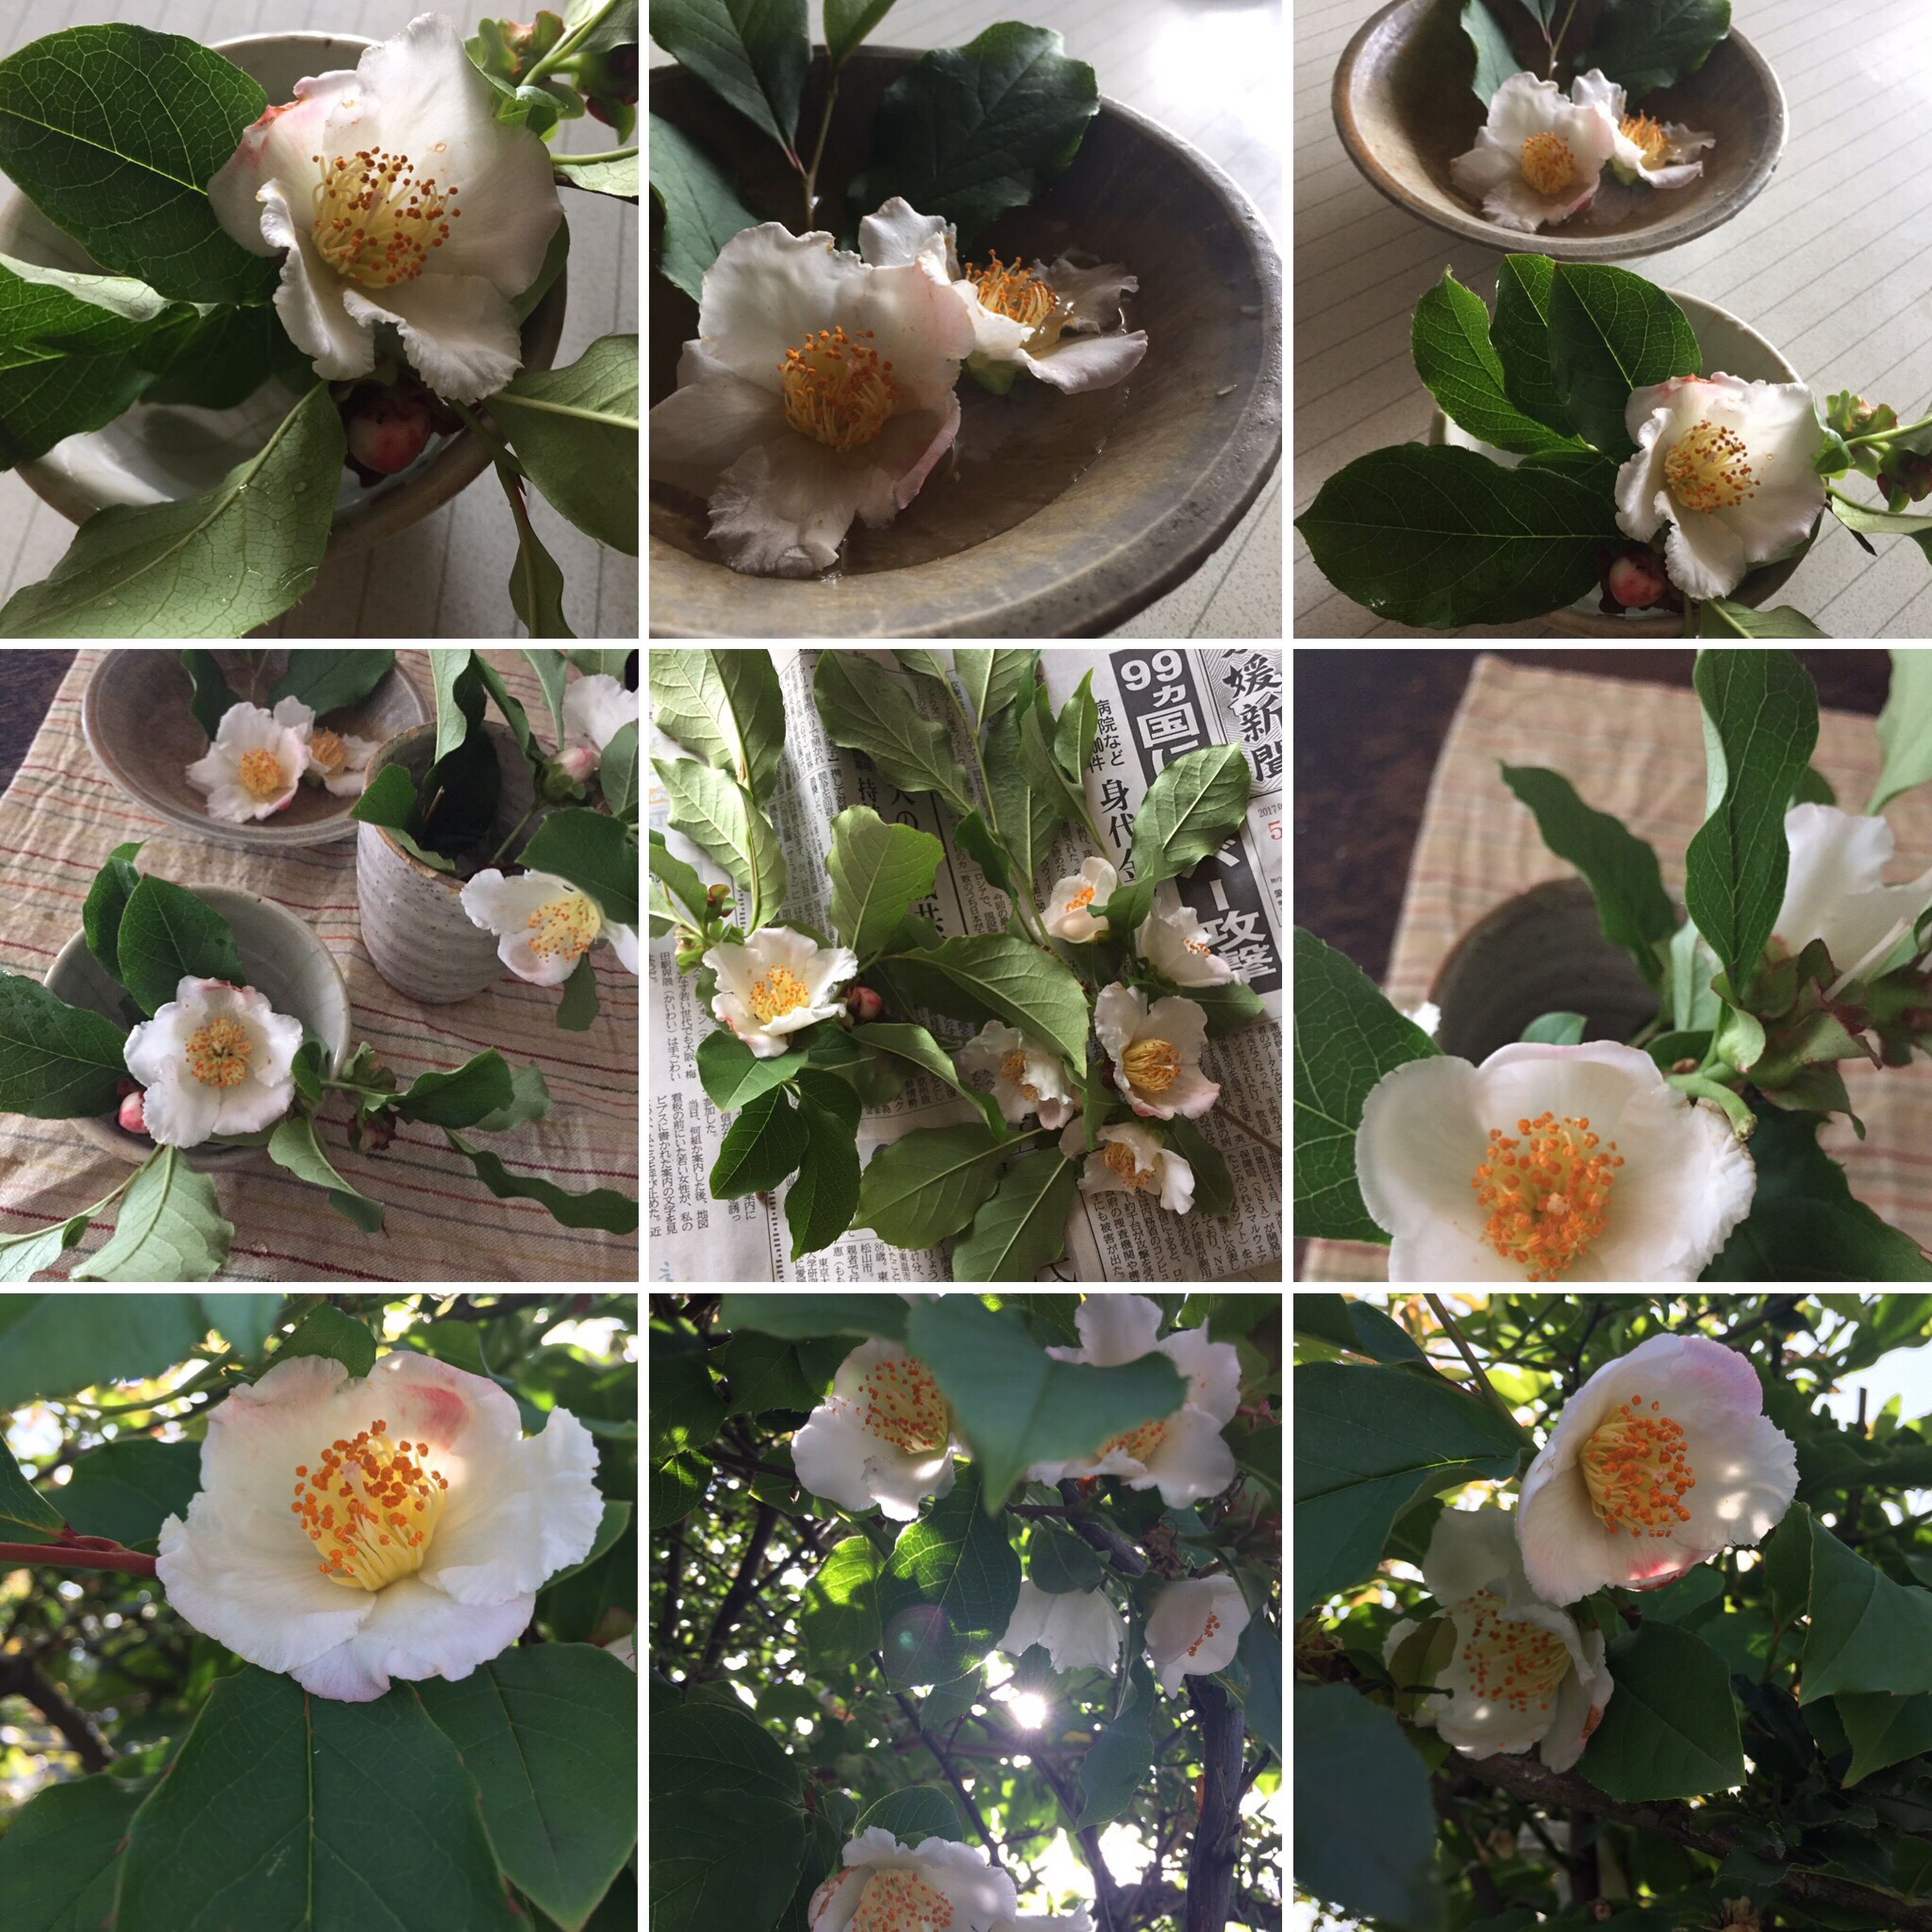 flower, freshness, collage, no people, food and drink, food, indoors, nature, multiple image, close-up, day, flower head